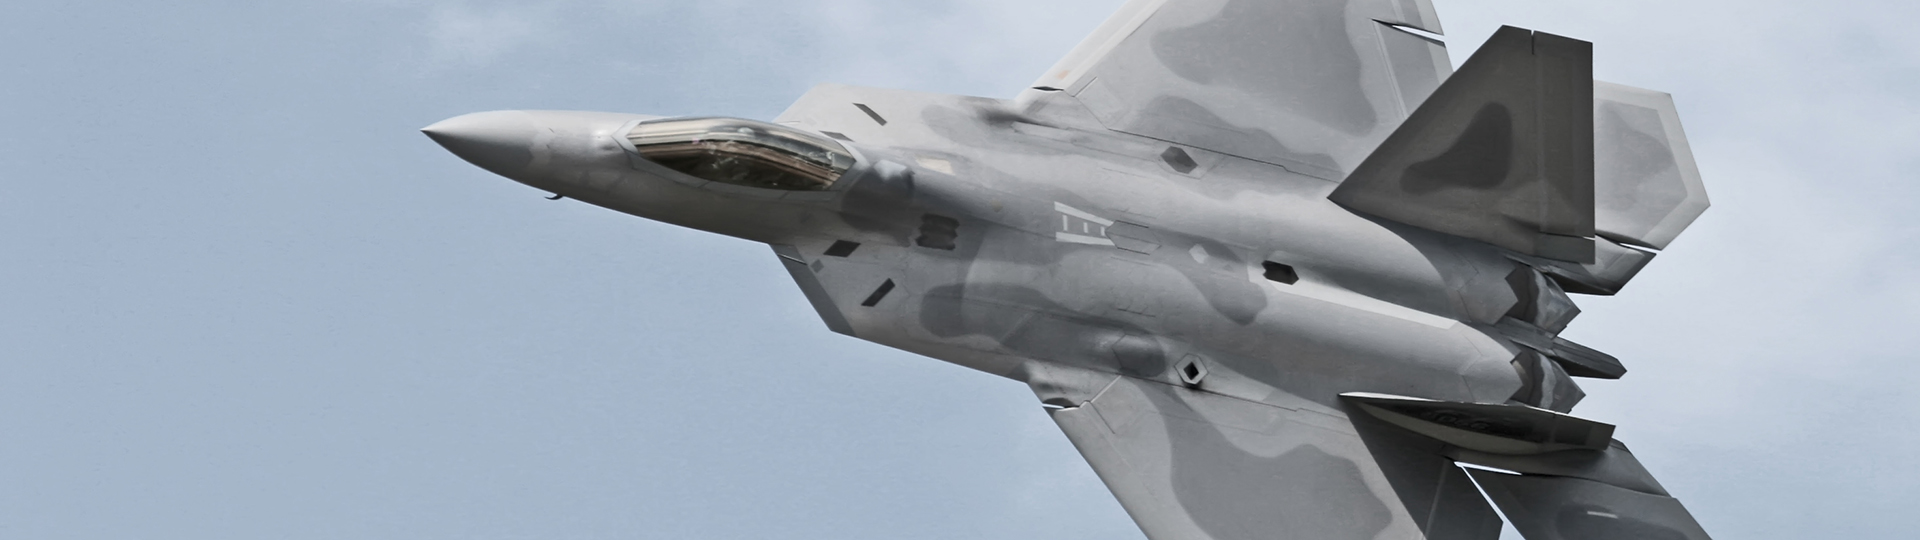 Lockheed Martin F-22 Stealth Fighter Aircraft